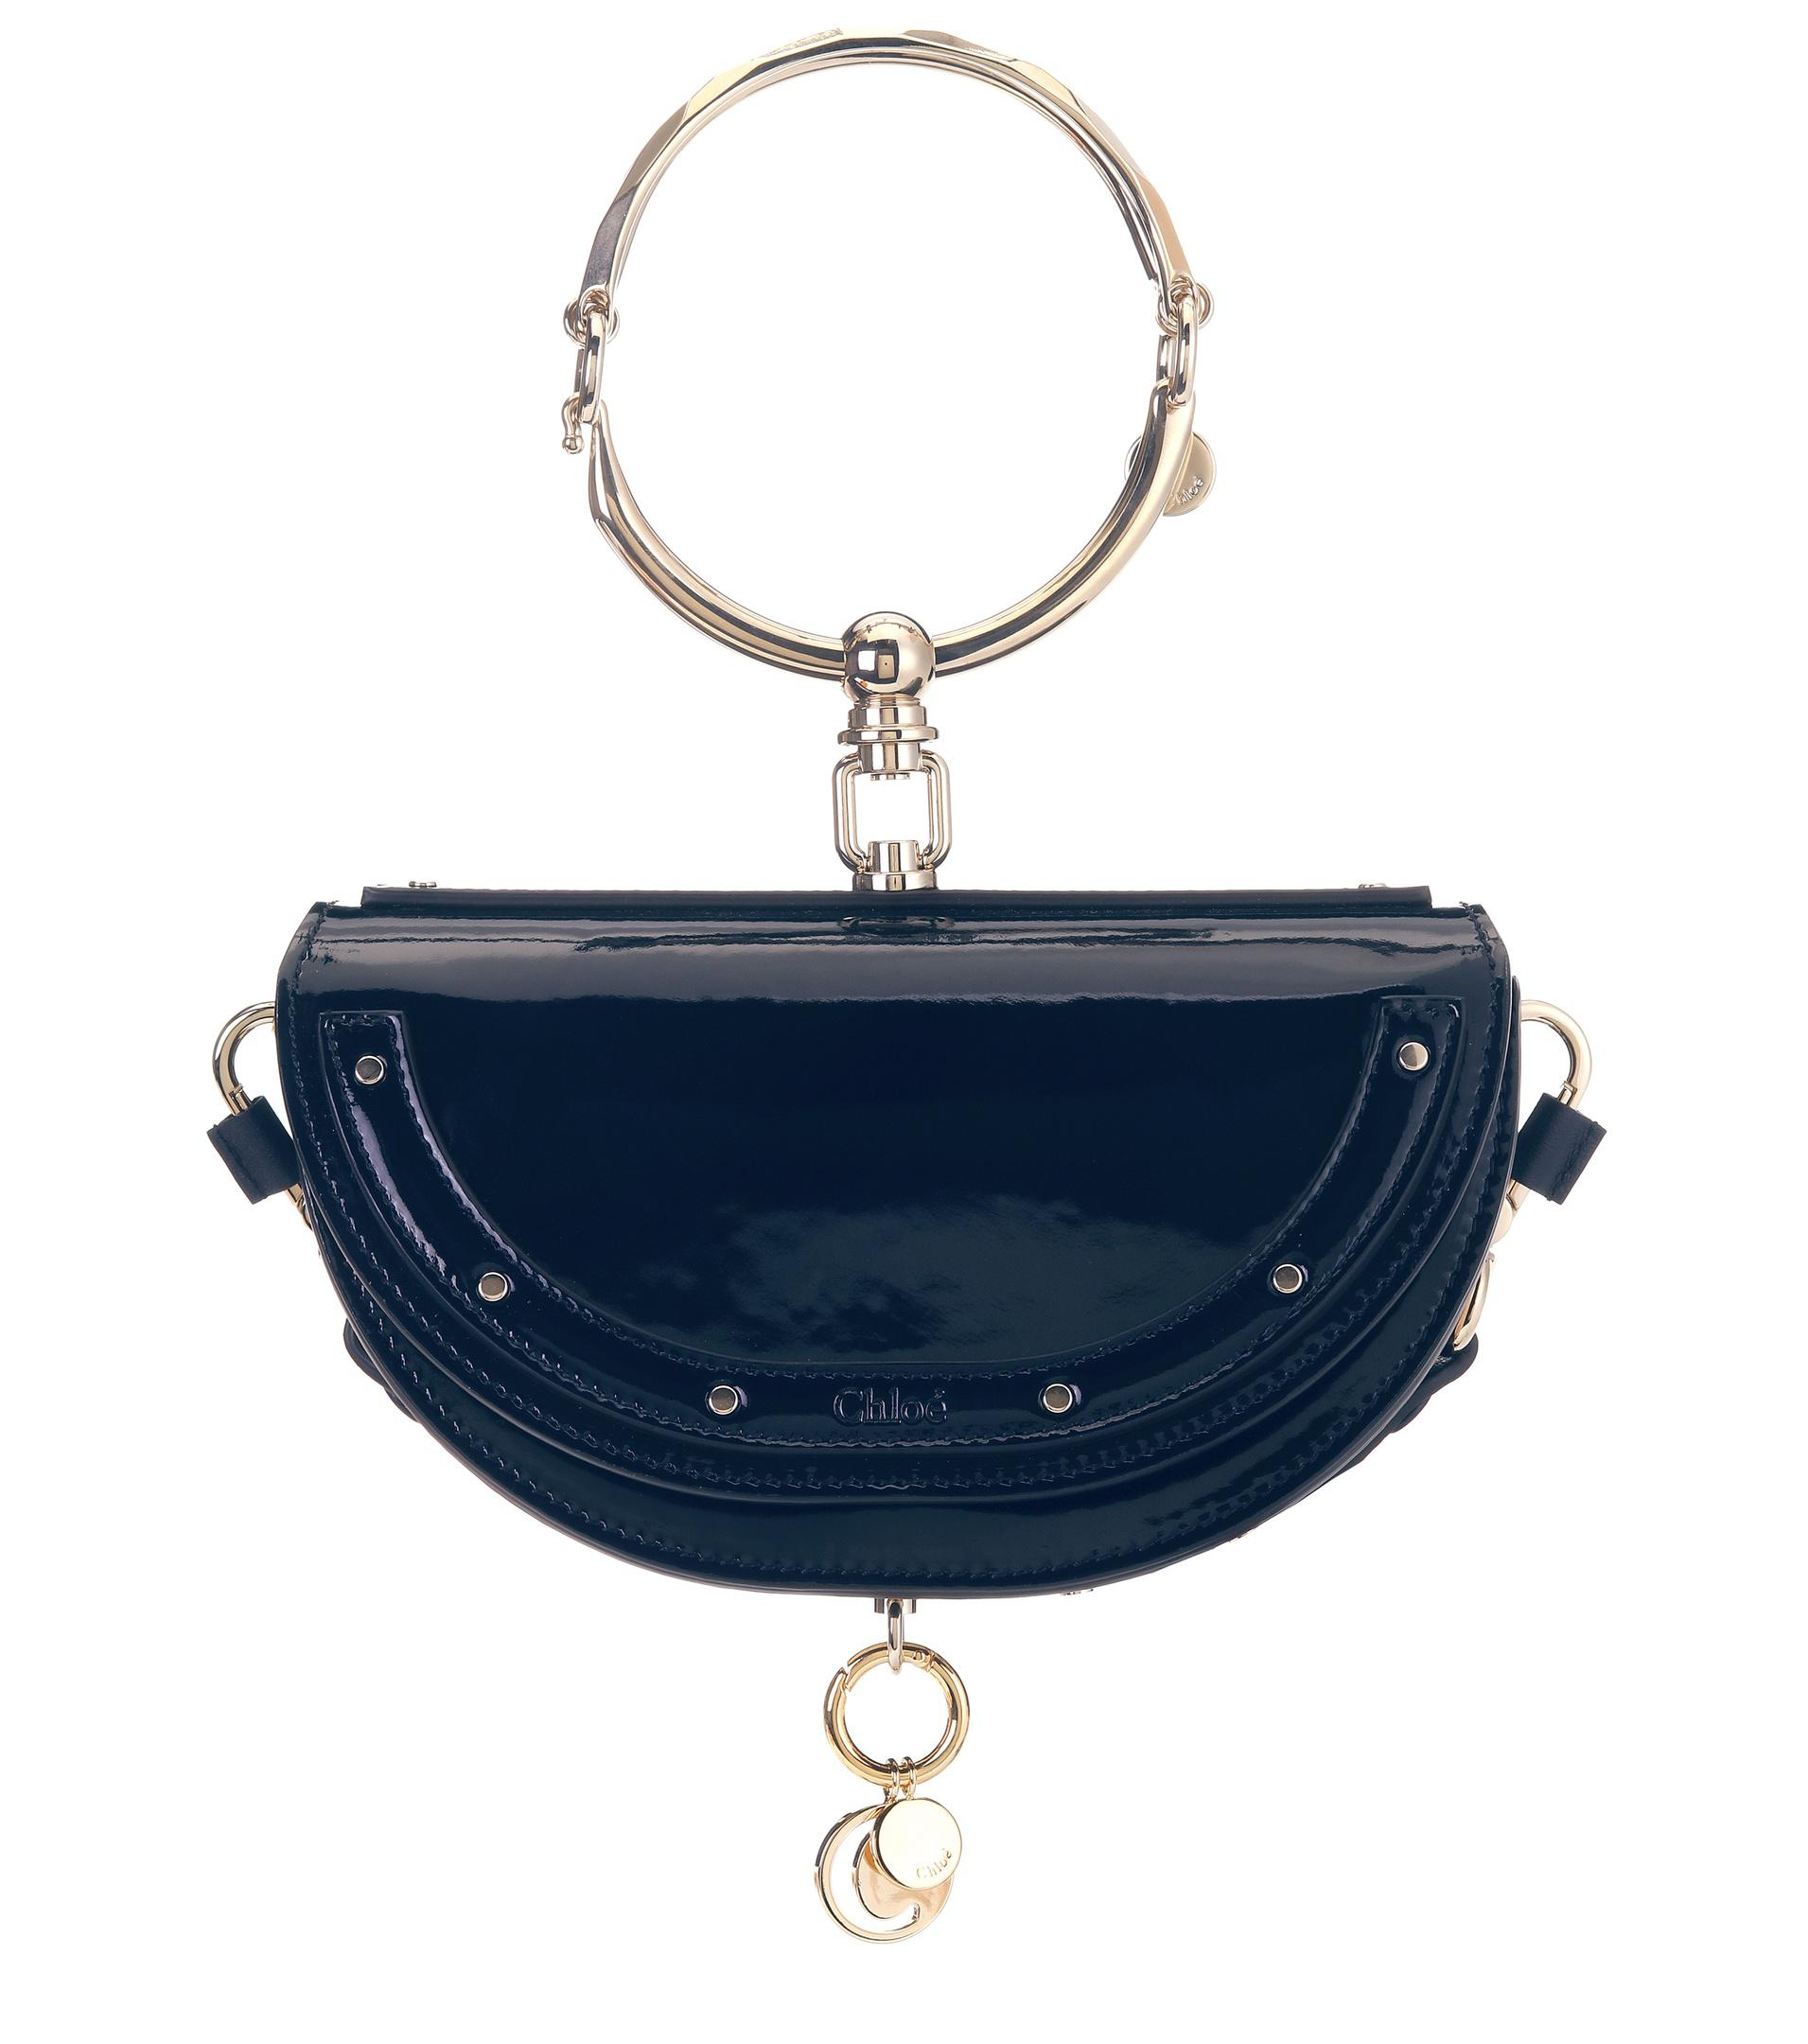 Blue Nile Minaudiere Bag Chlo</ototo></div>                                   <span></span>                               </div>             <div>                                       <div>                                             <h3>                         Choose Your Path                     </h3>                                         </div>                                     <div>                                             <a href=